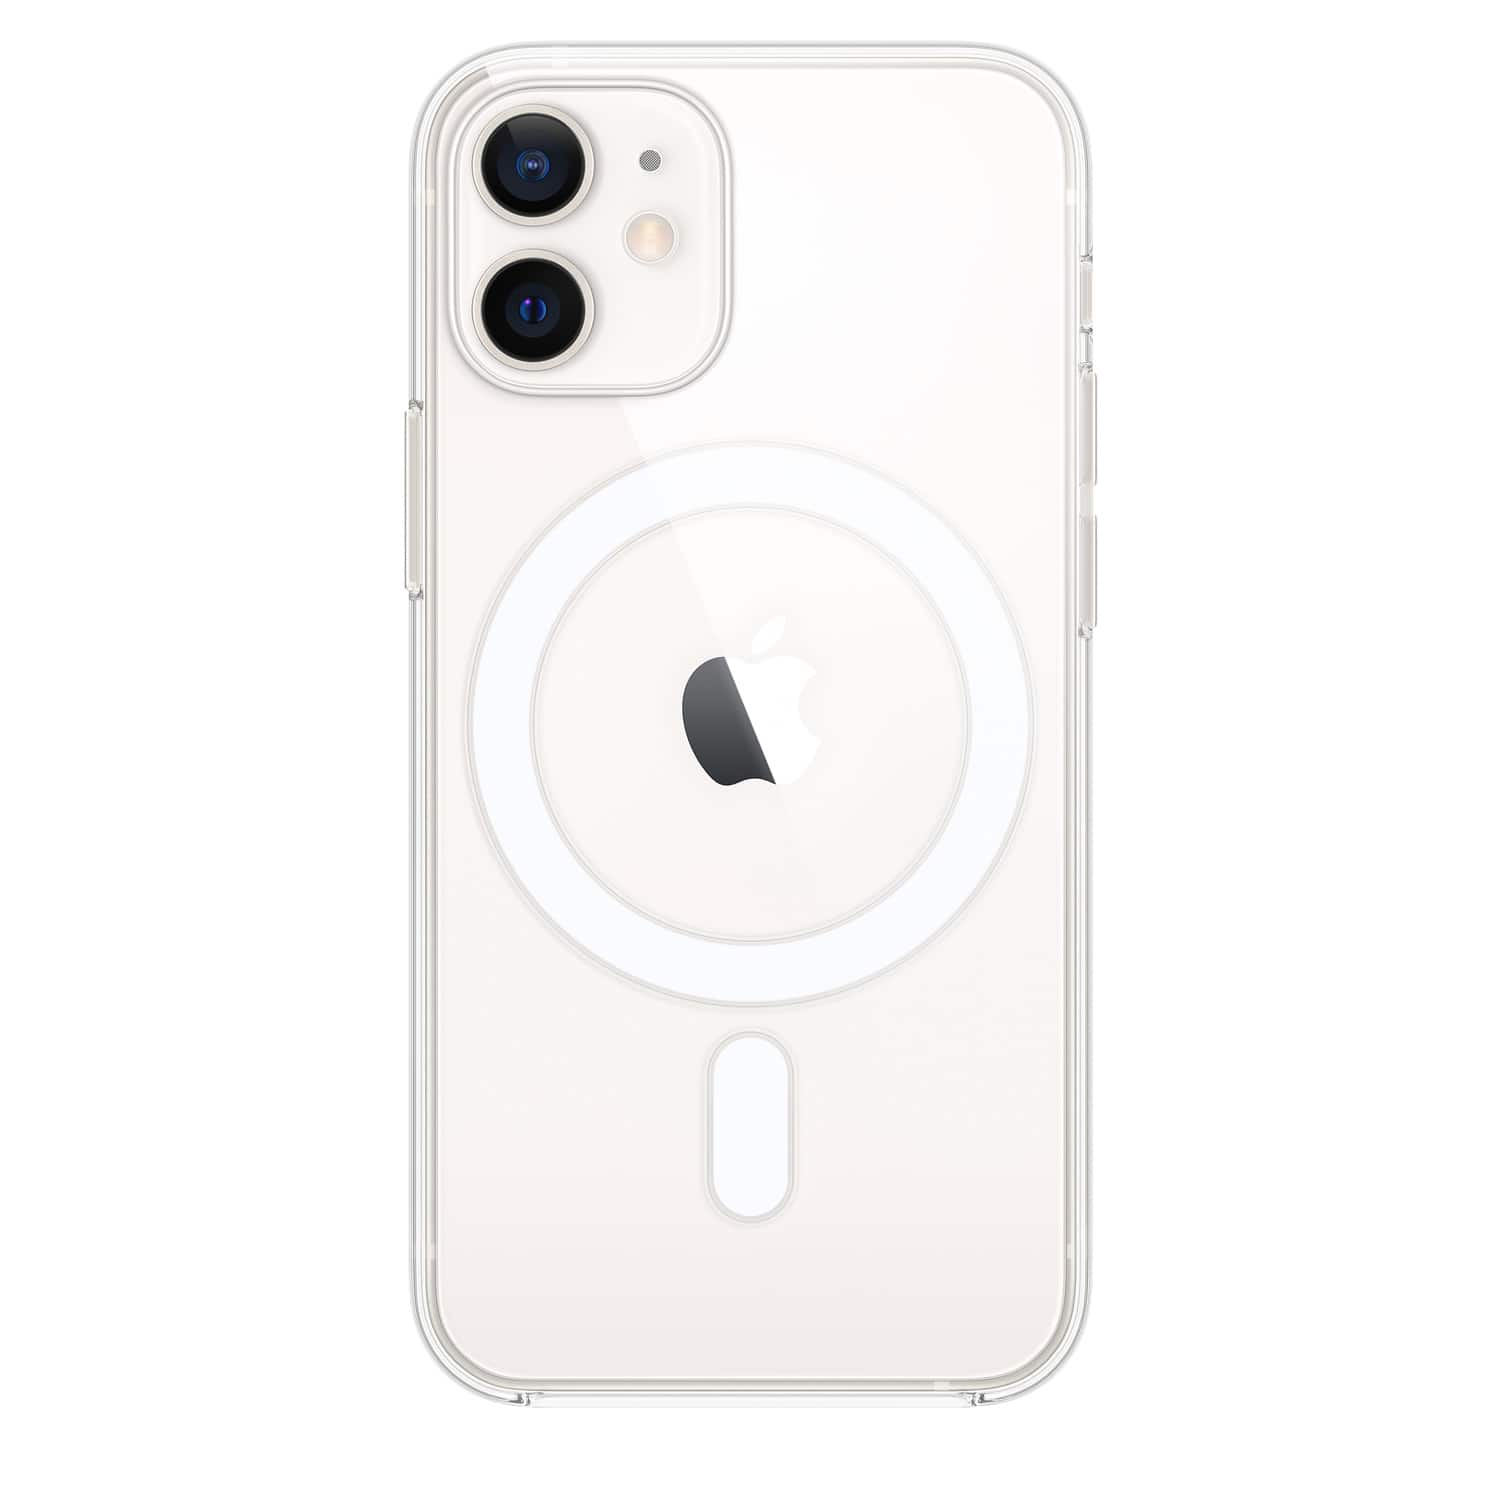 Apple iPhone 12 mini Clear Case with MagSafe $20 at Best Buy